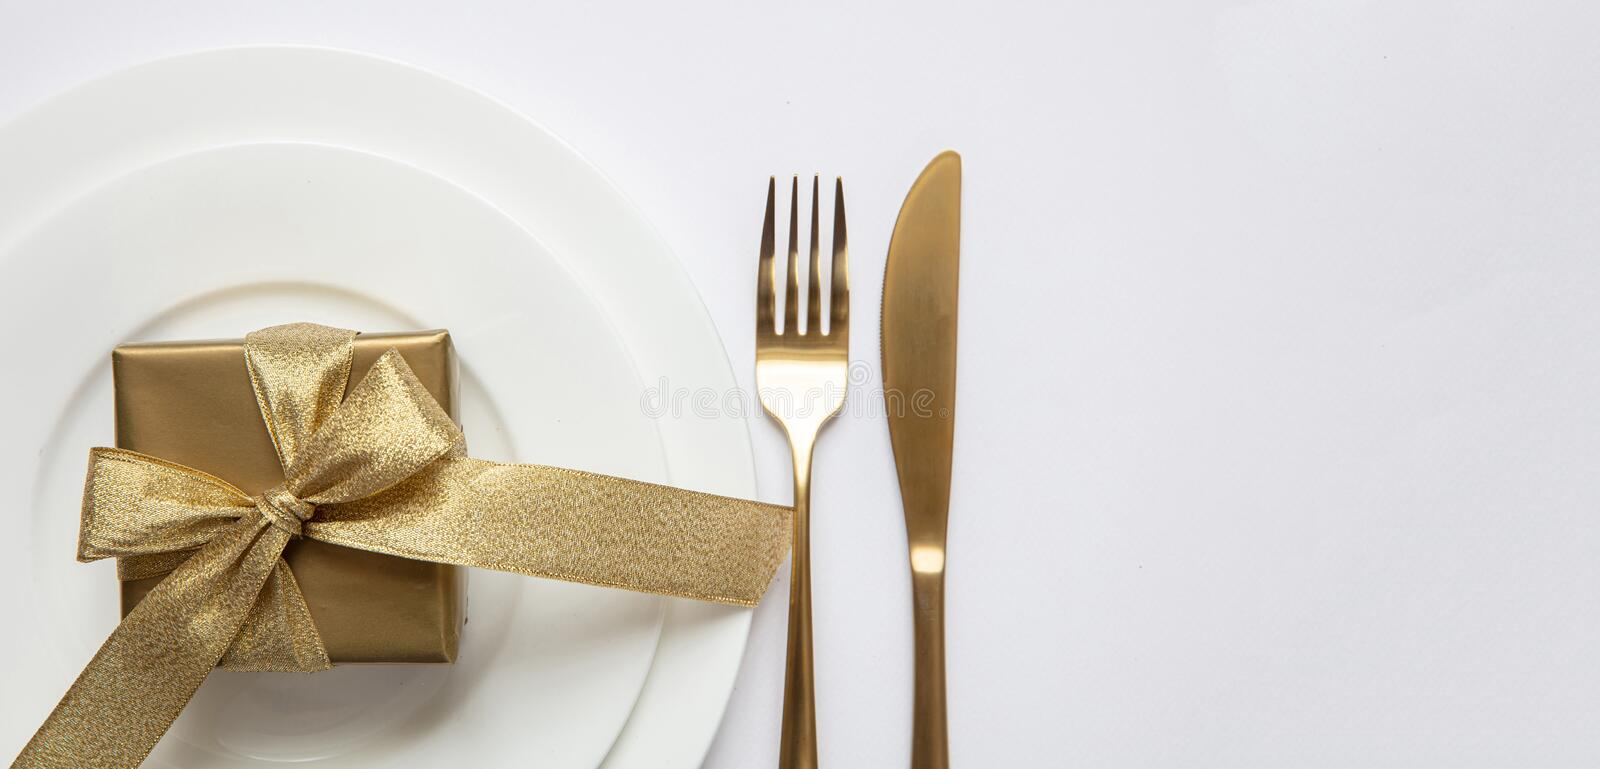 Table setting, xmas, new year. Gold cutlery on white set of dishes, white background stock images